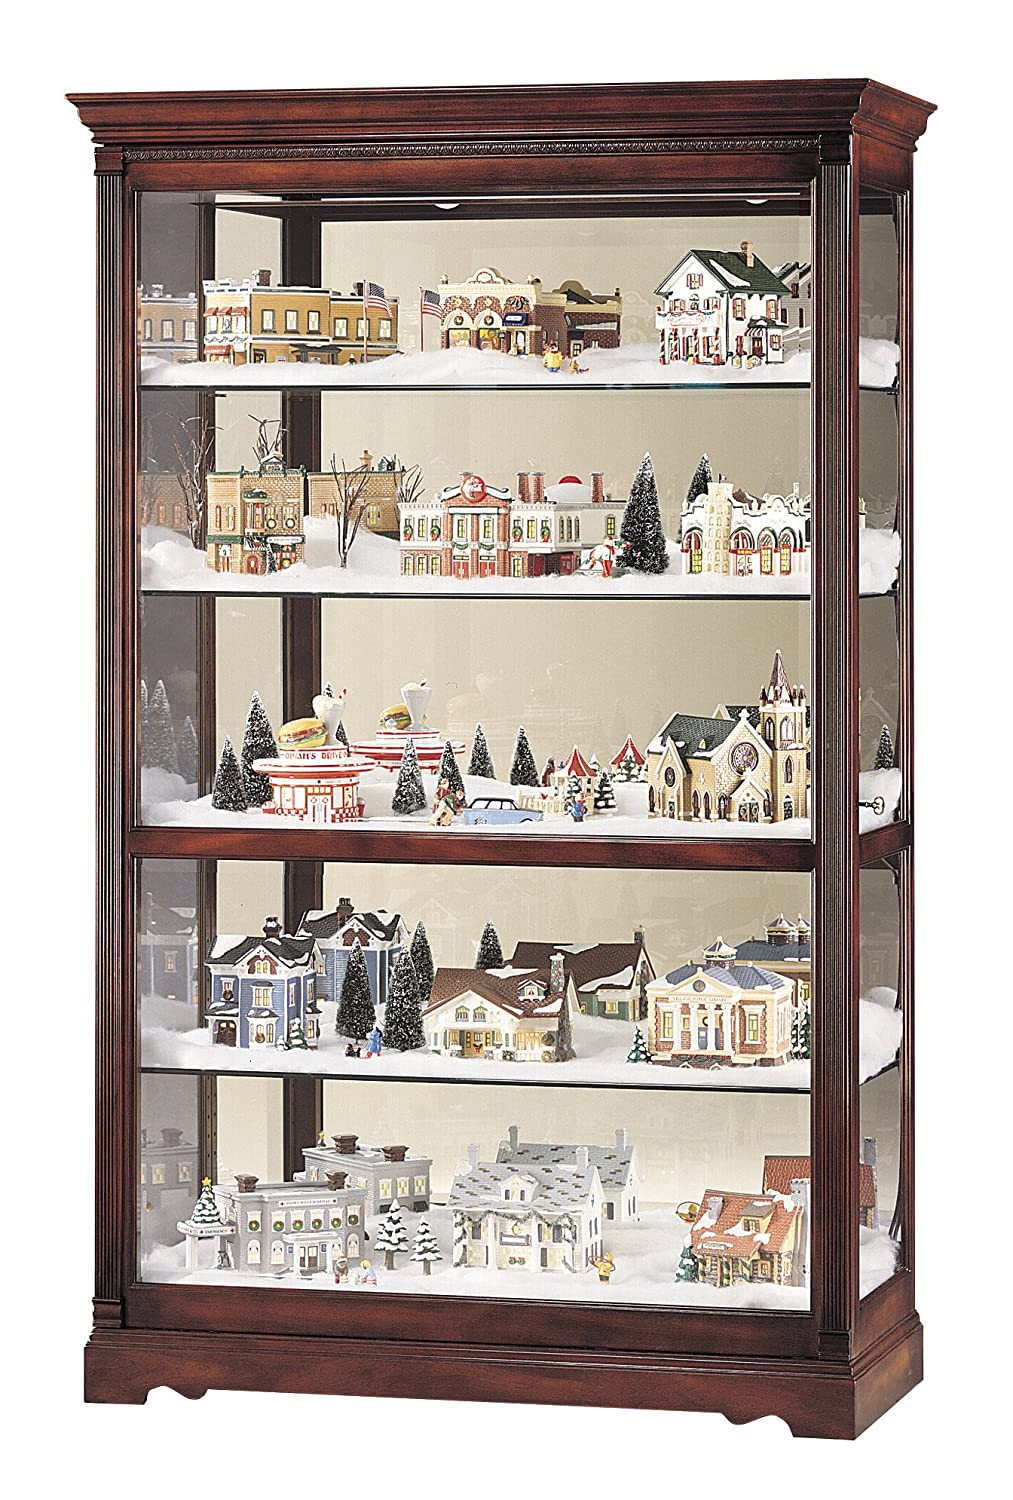 Lovely Amazon.com: Howard Miller 680 235 Townsend Curio Cabinet By: Kitchen U0026  Dining